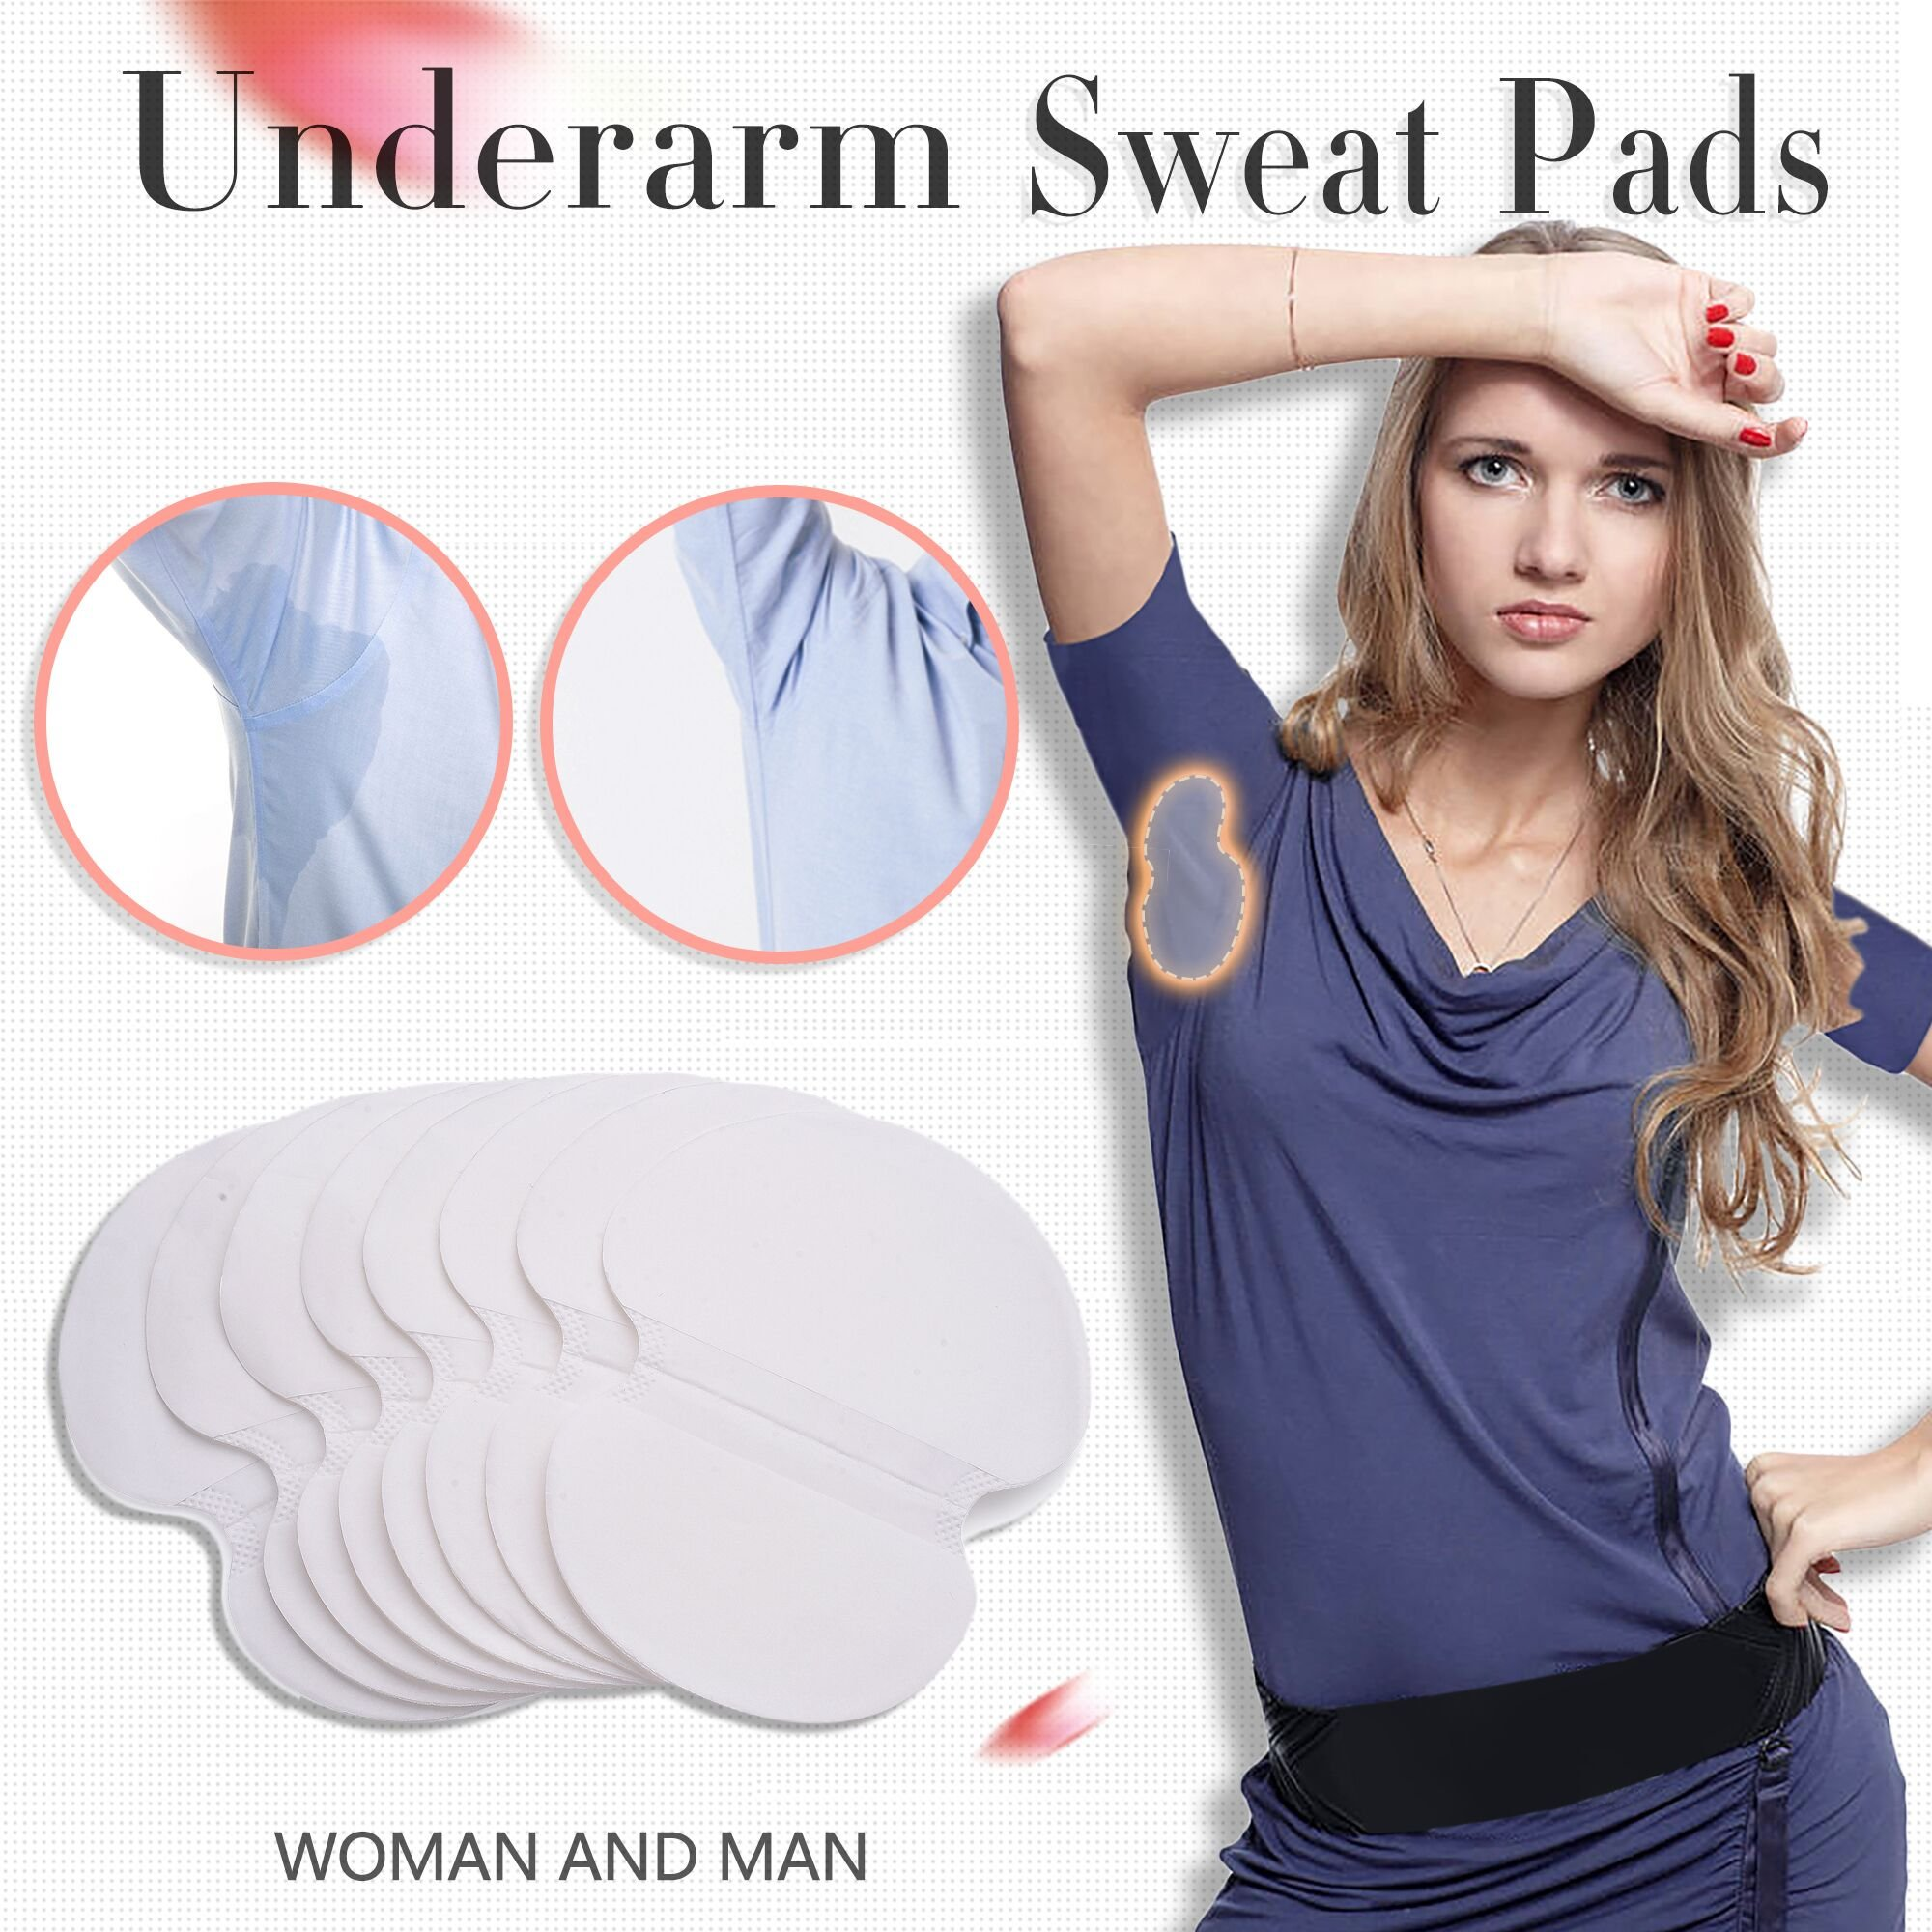 Underarm Sweat Pad - Voerou [60 Pack] Fight Hyperhidrosis Underarm Armpit Sweat Perspiration Pads Disposable Absorbent Underarm Dress Shields Antiperspirant Adhesive Underarm Pad For Women/Men